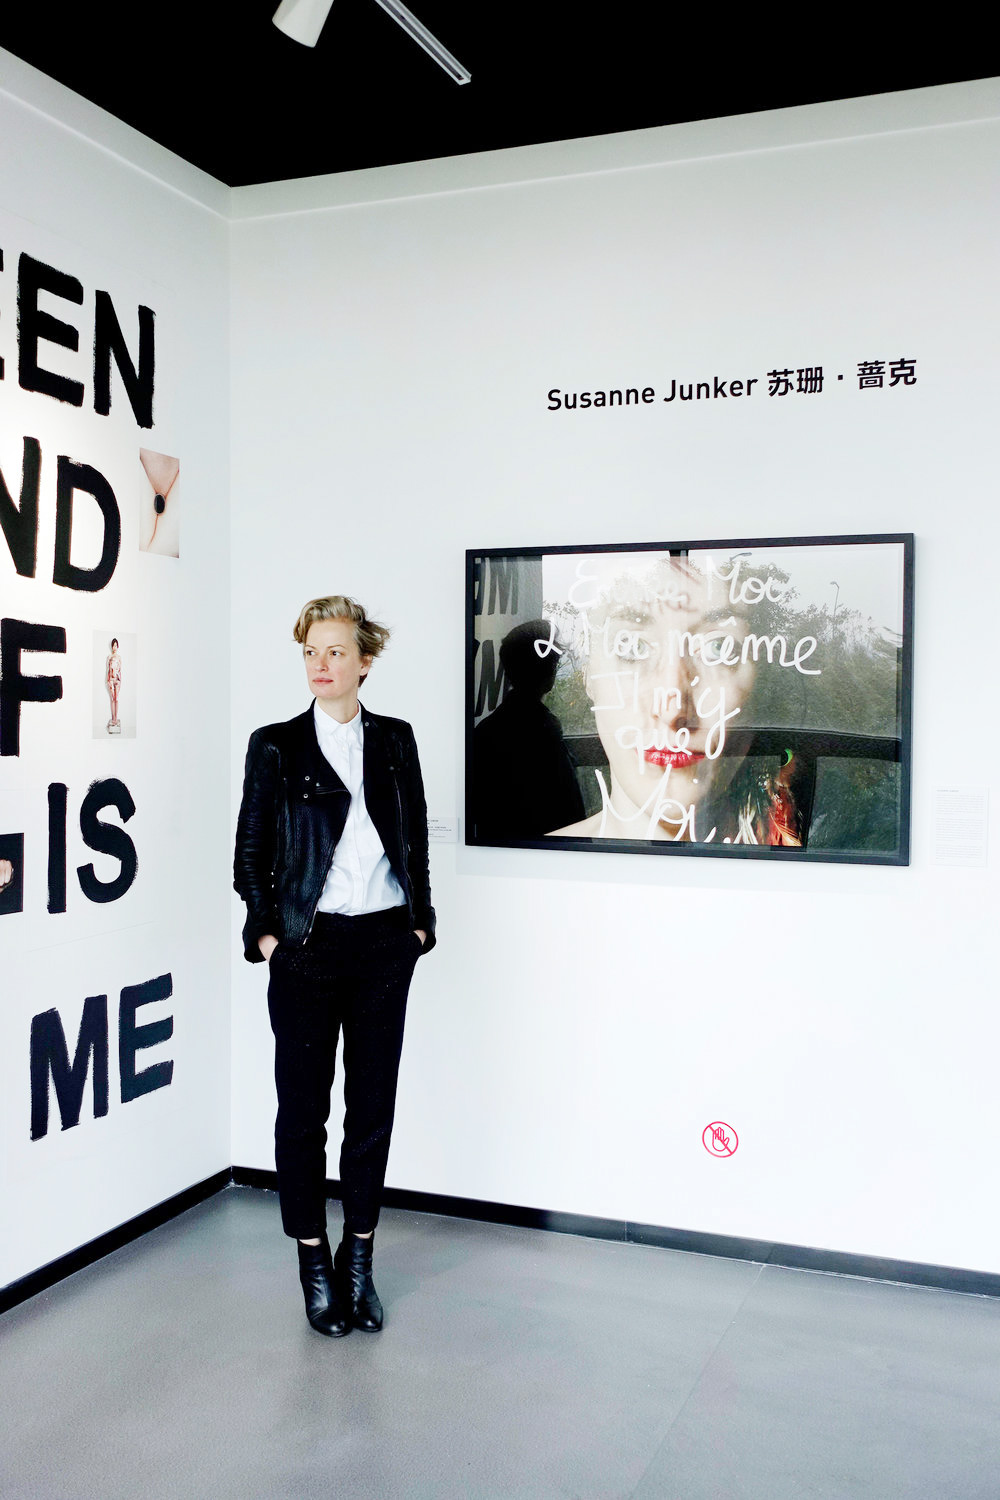 Susanne Junker, WhyWhyArt center, Nanjing, China, December 2017